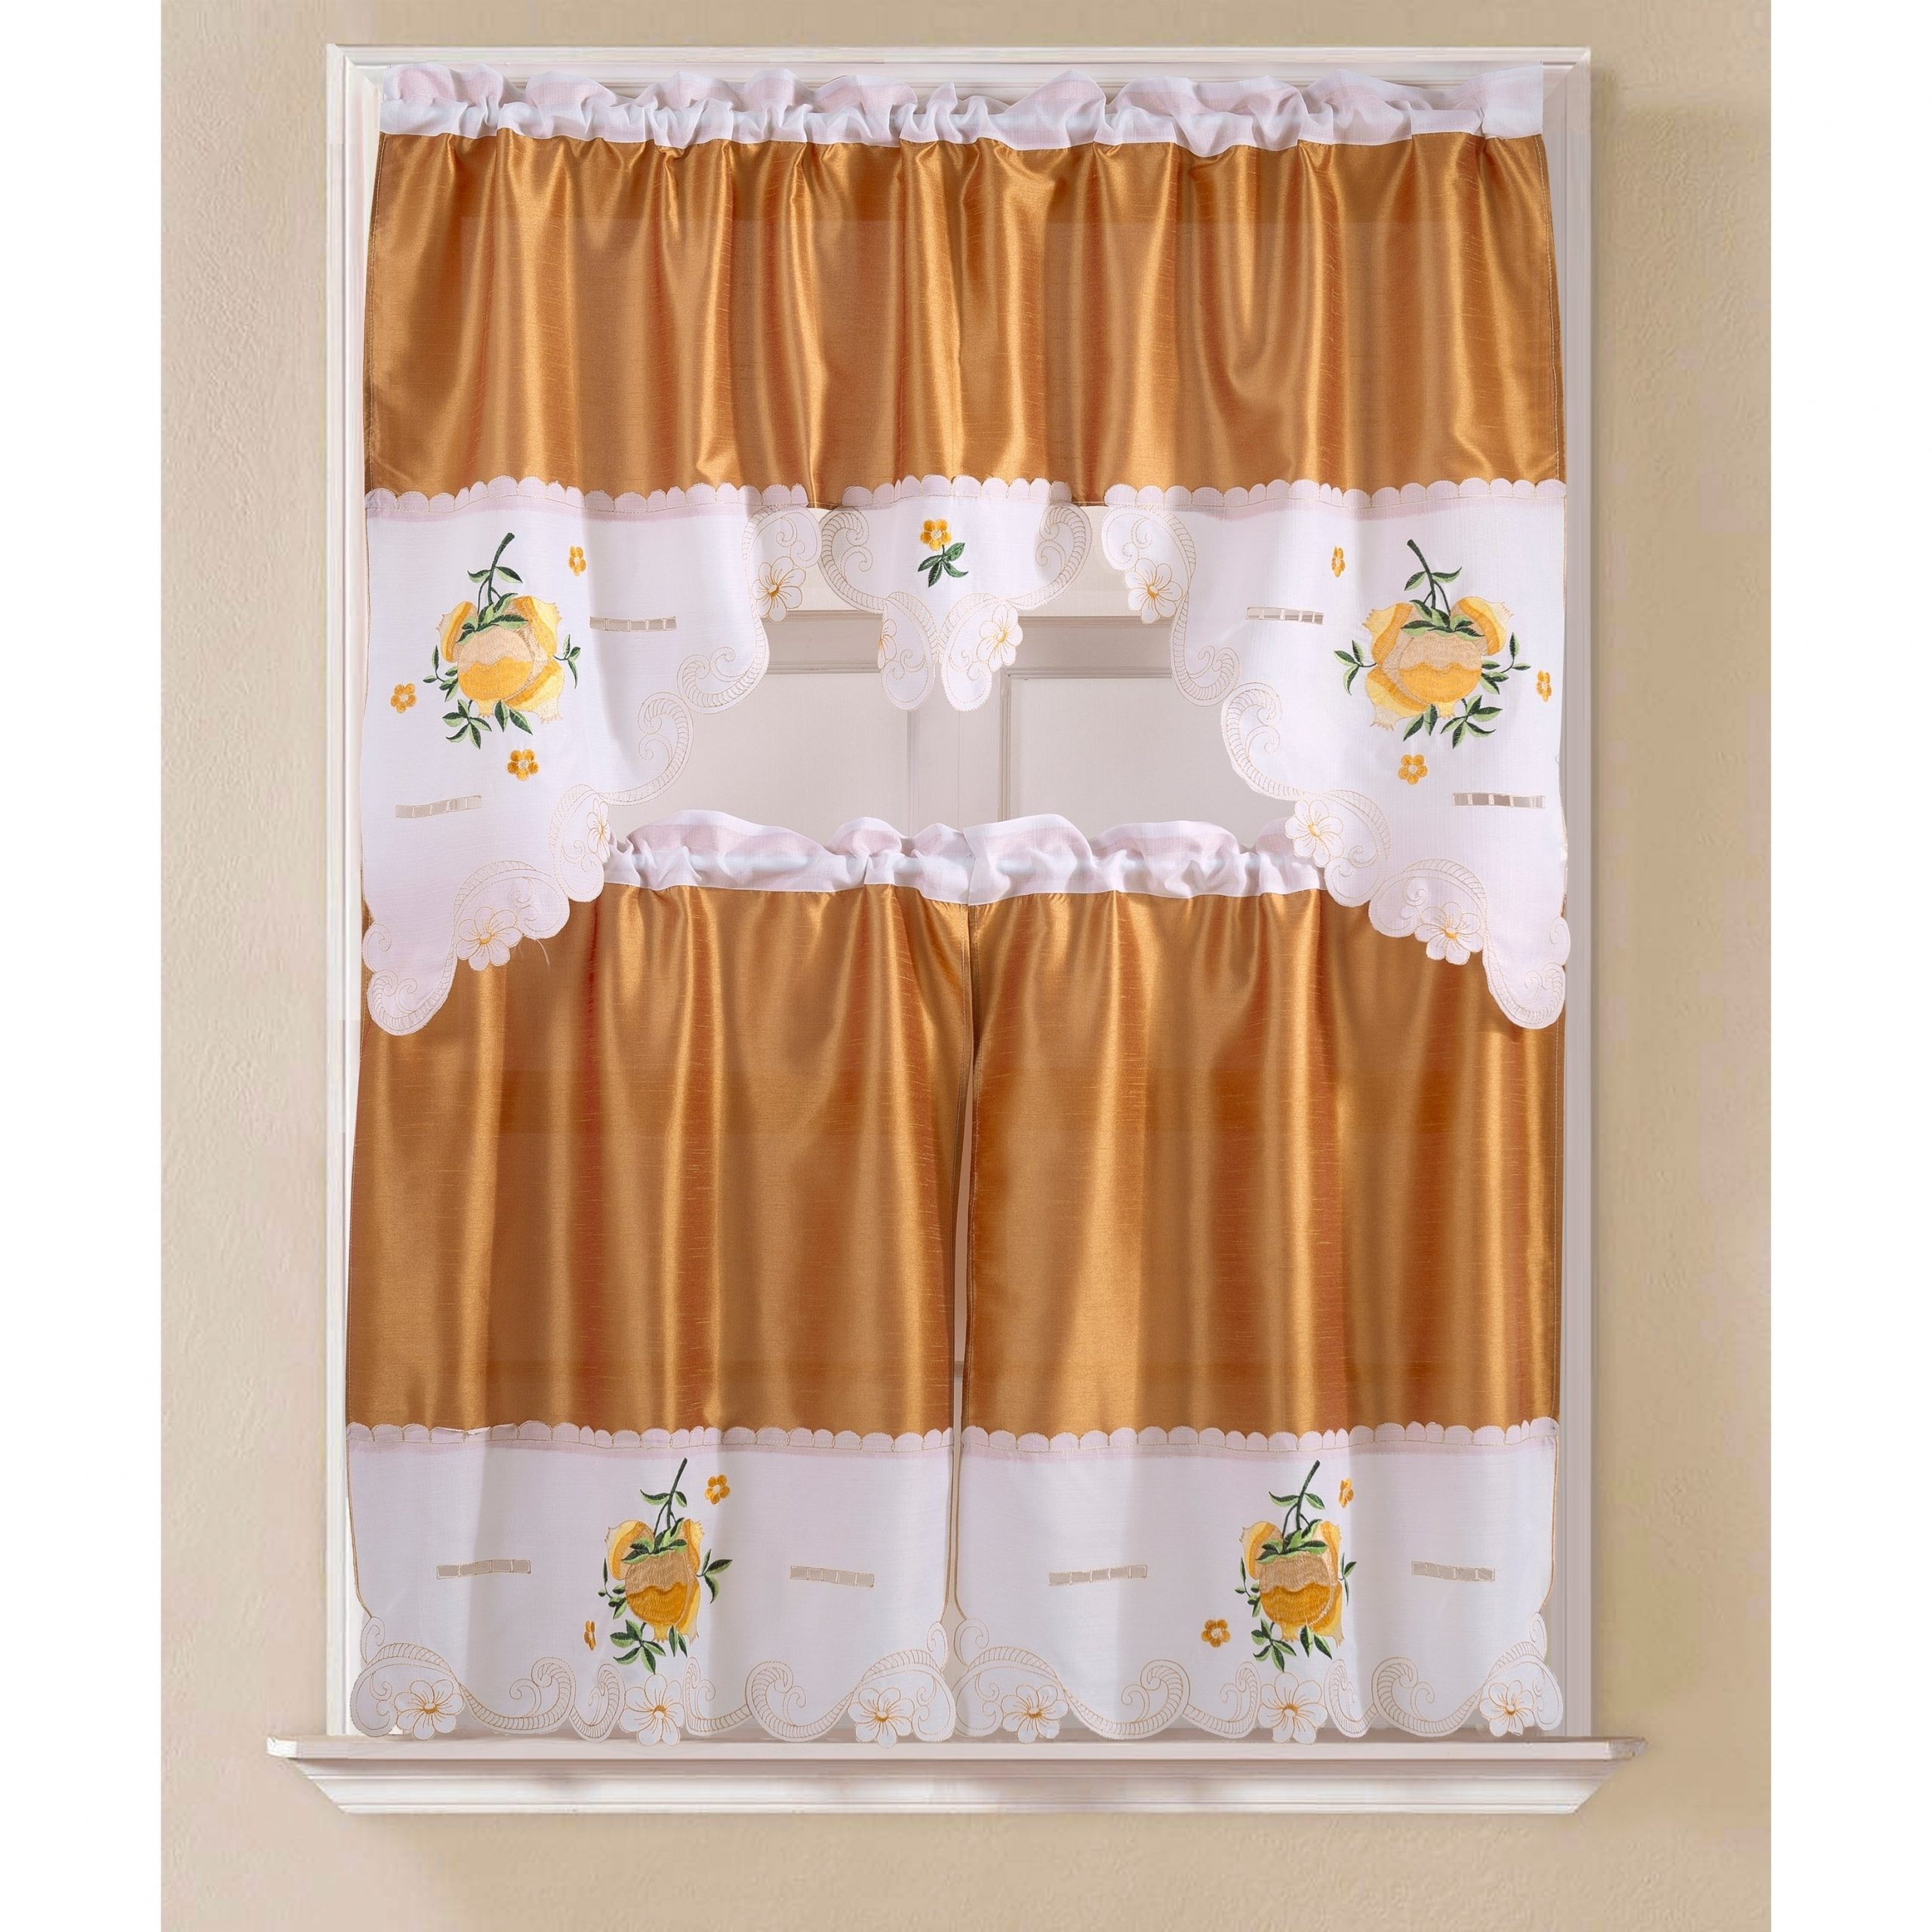 Imperial Flower Jacquard Tier And Valance Kitchen Curtain Sets Within Famous Porch & Den Eastview Faux Silk 3 Piece Kitchen Curtain Set (View 10 of 20)